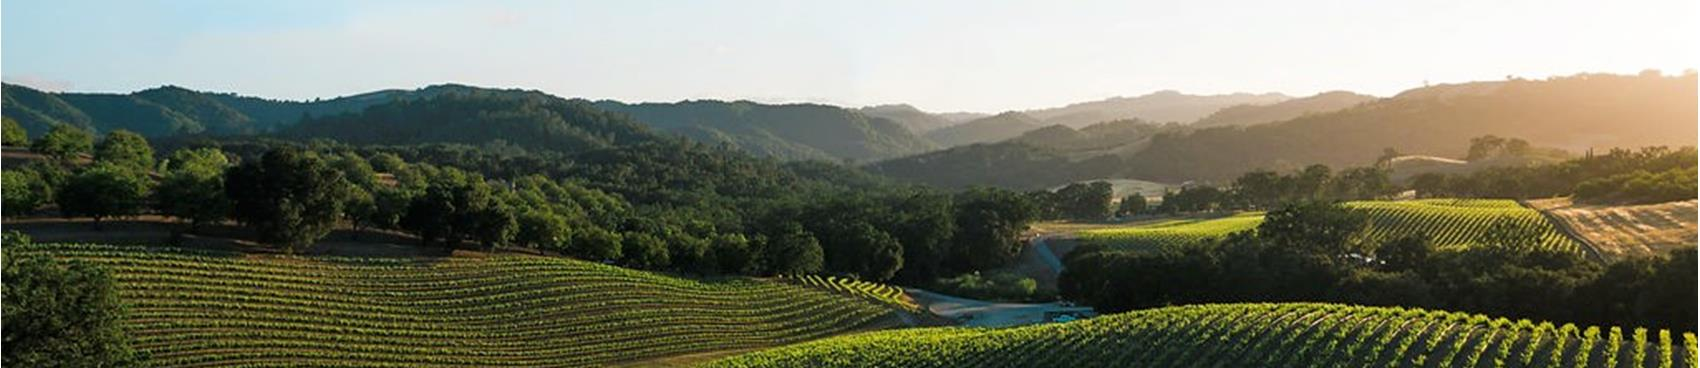 A image of Opolo Vineyards